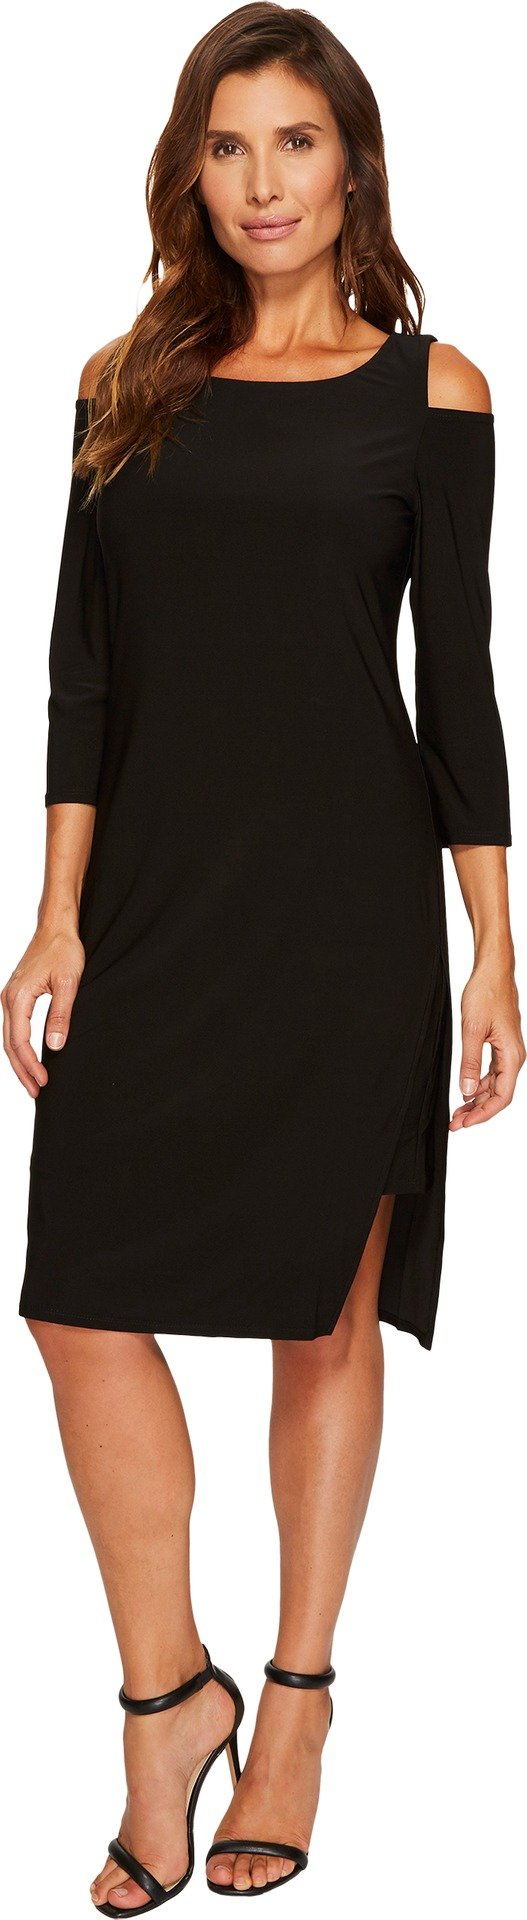 Tribal Women's Travel Pack and Go Cold Shoulder Dress Black XX-Large by Tribal